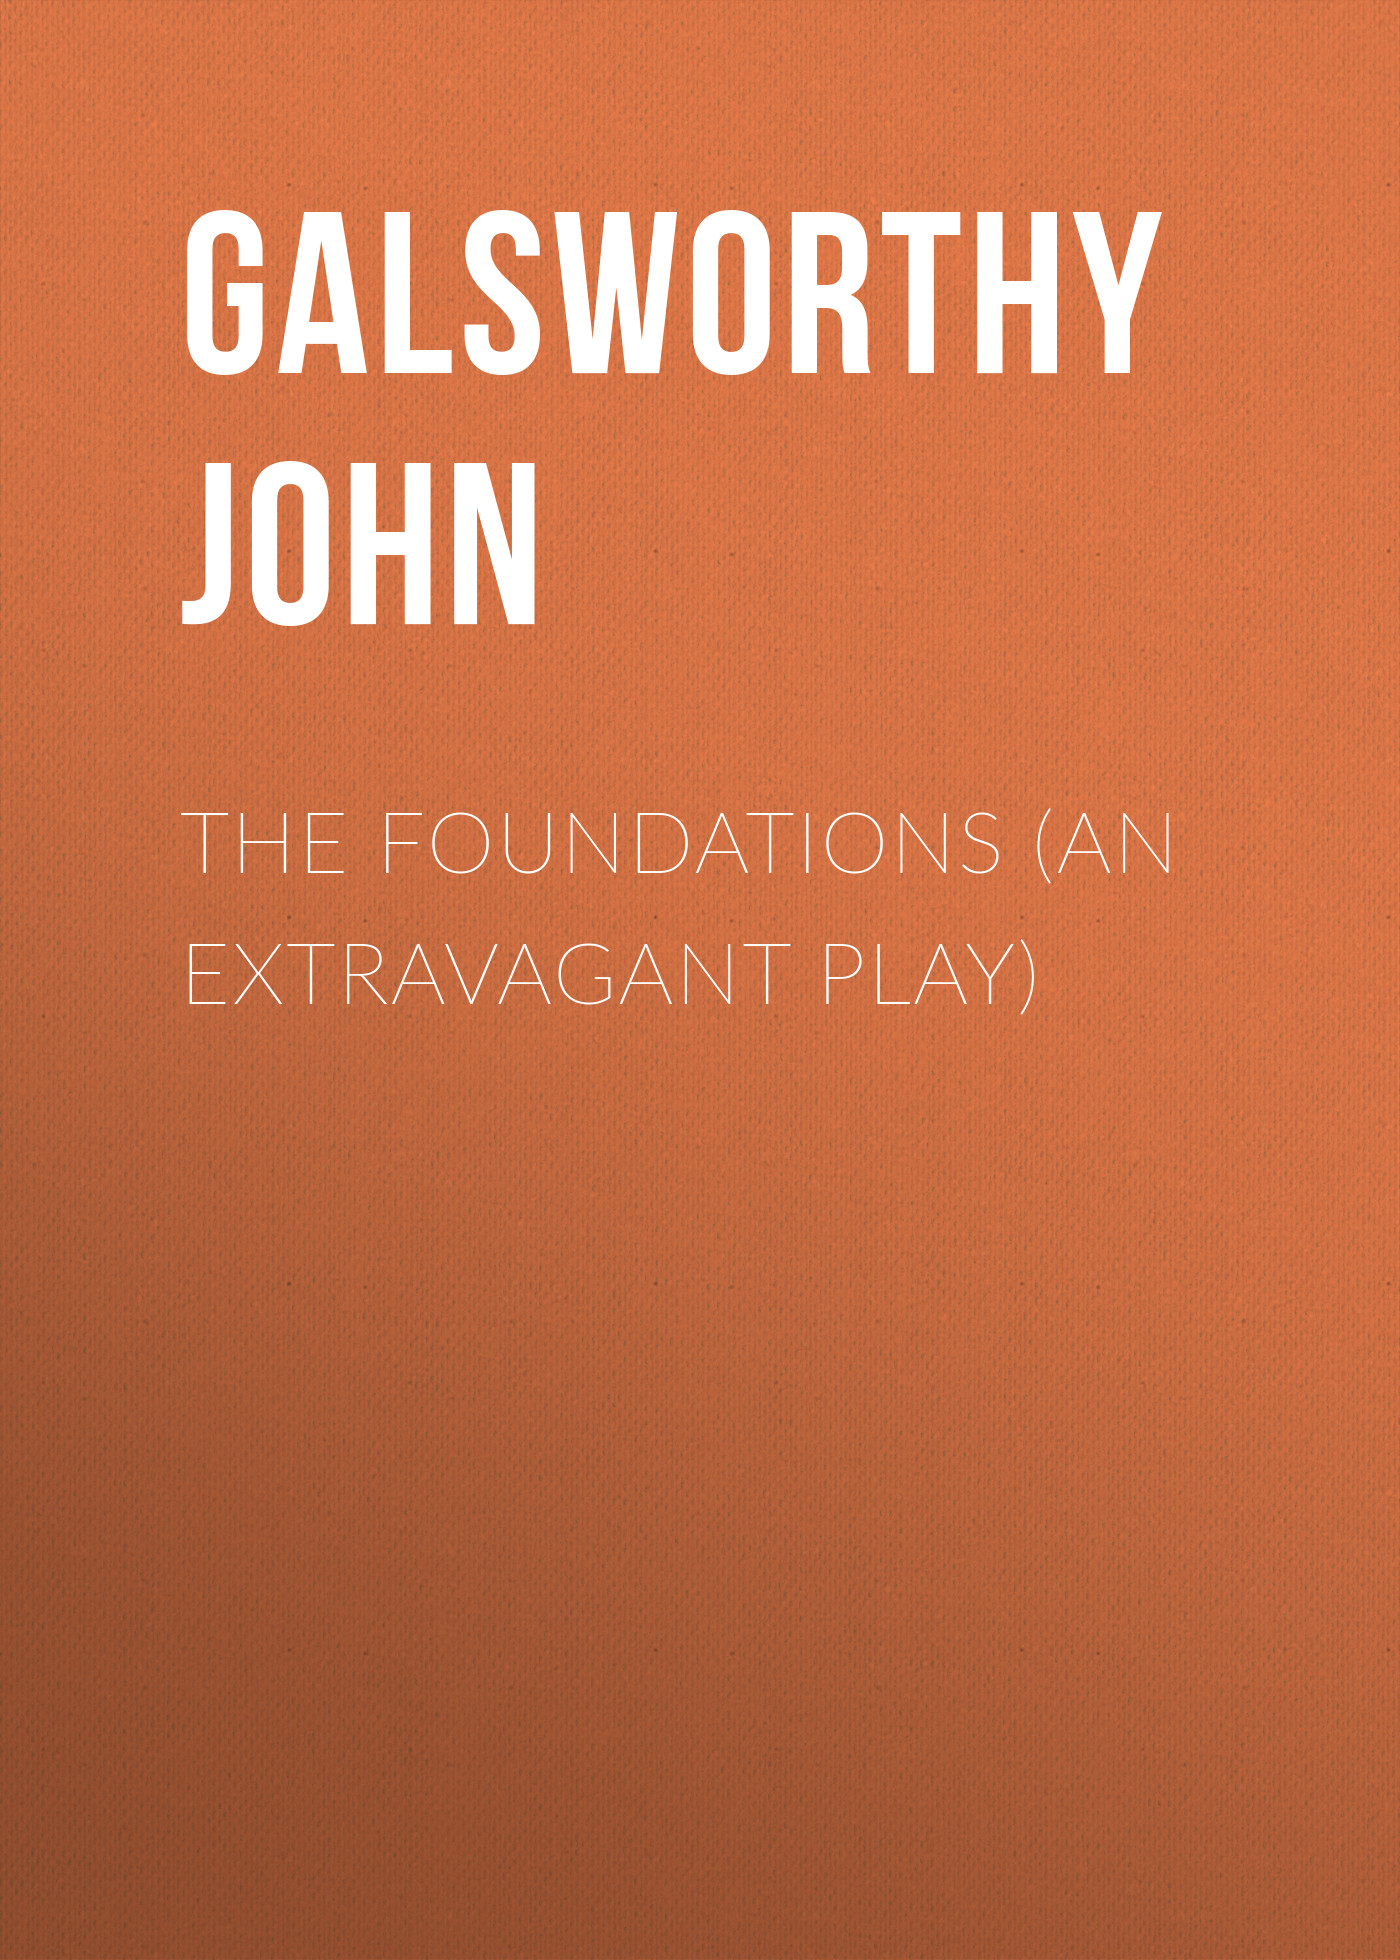 Galsworthy John The Foundations (An Extravagant Play)